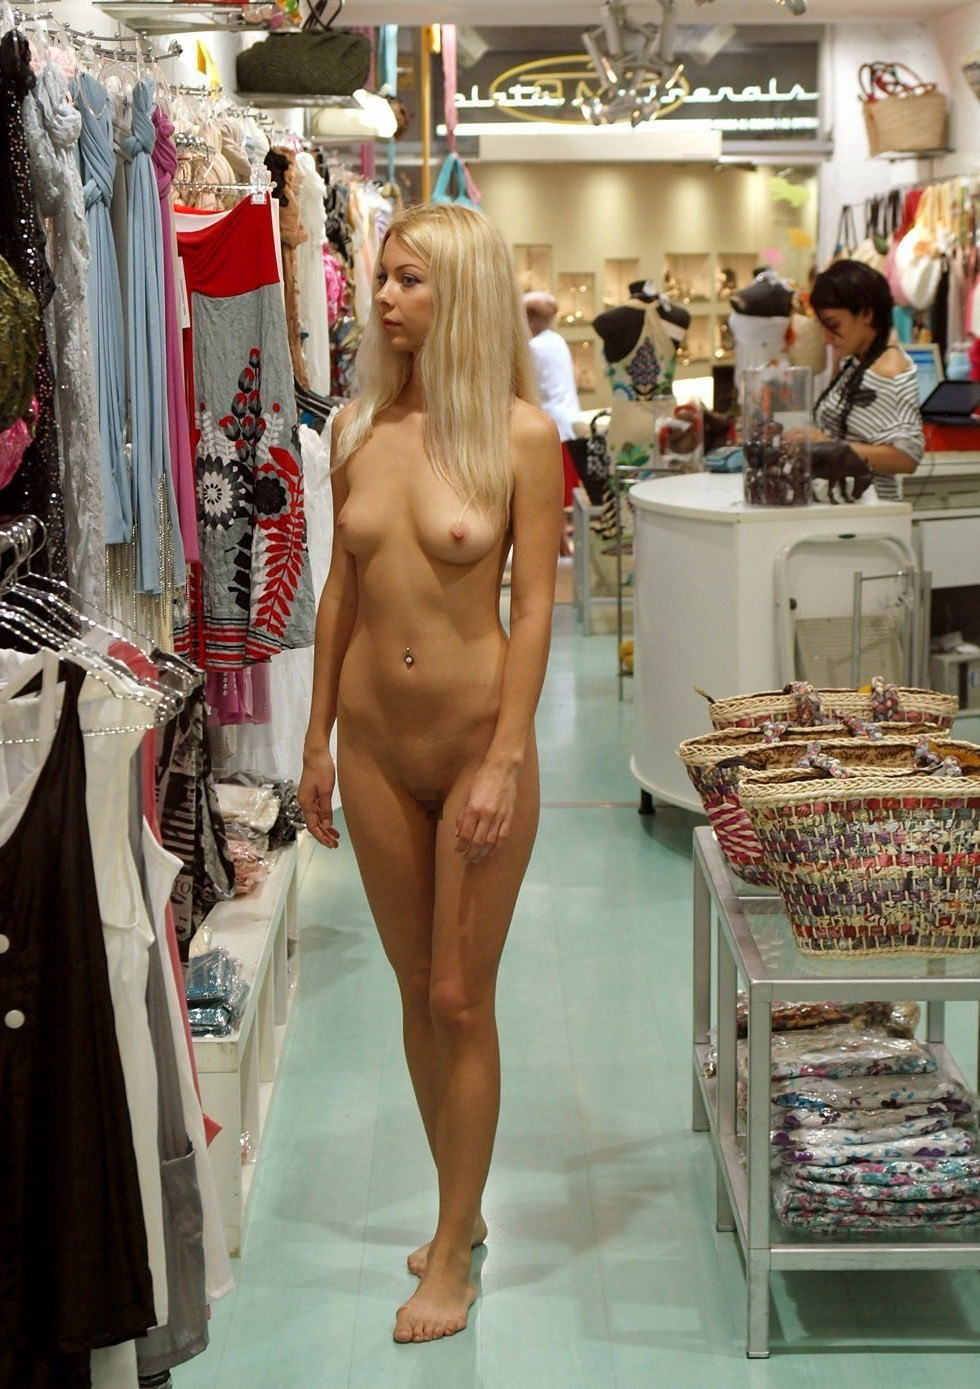 Excited too Nude girls at the store